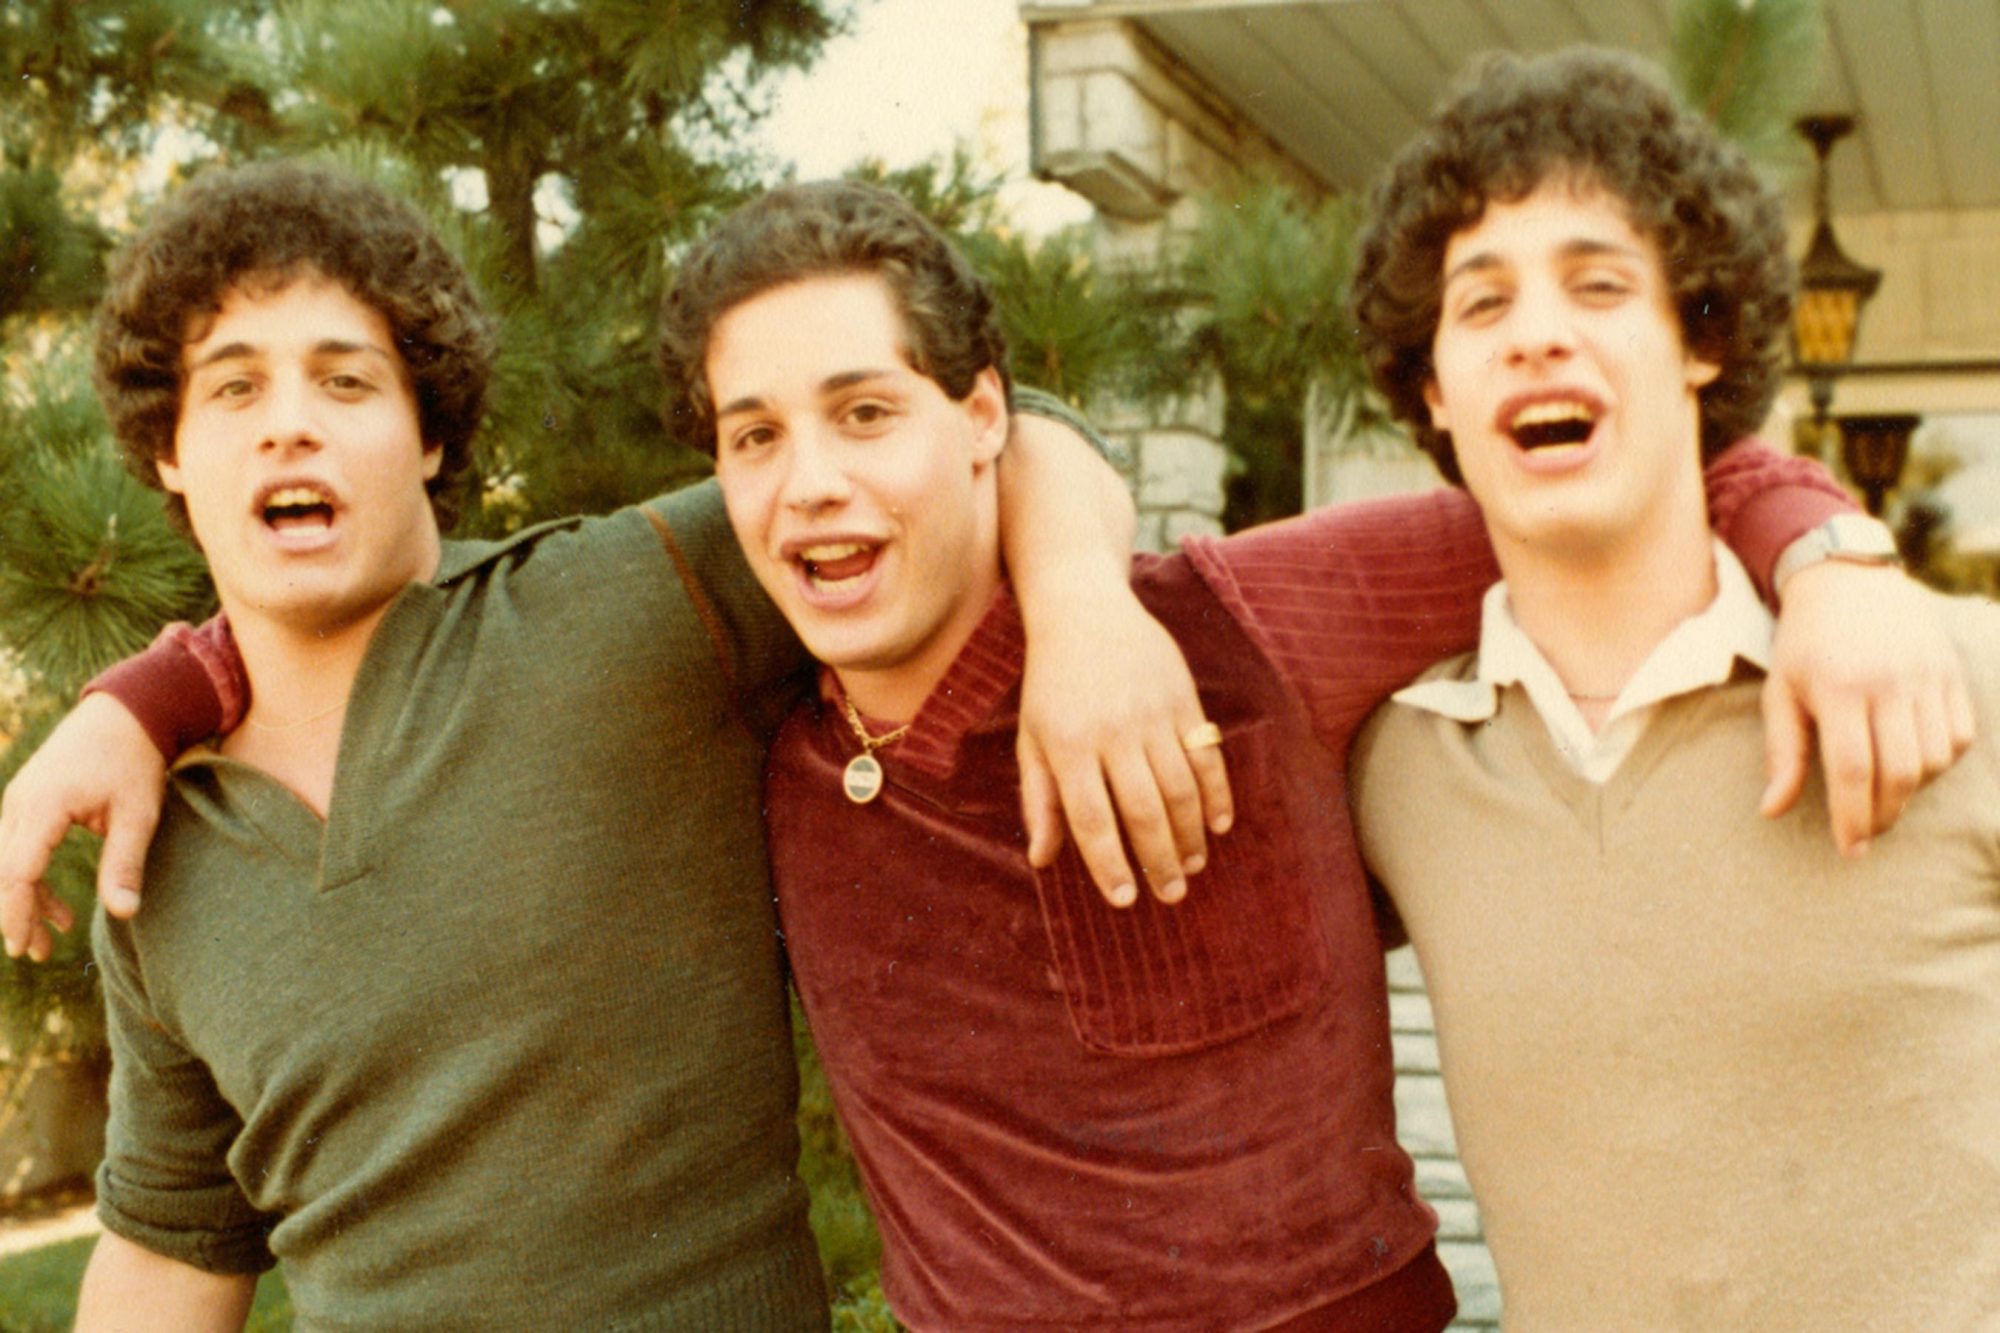 Three Identical Strangers - Still 1